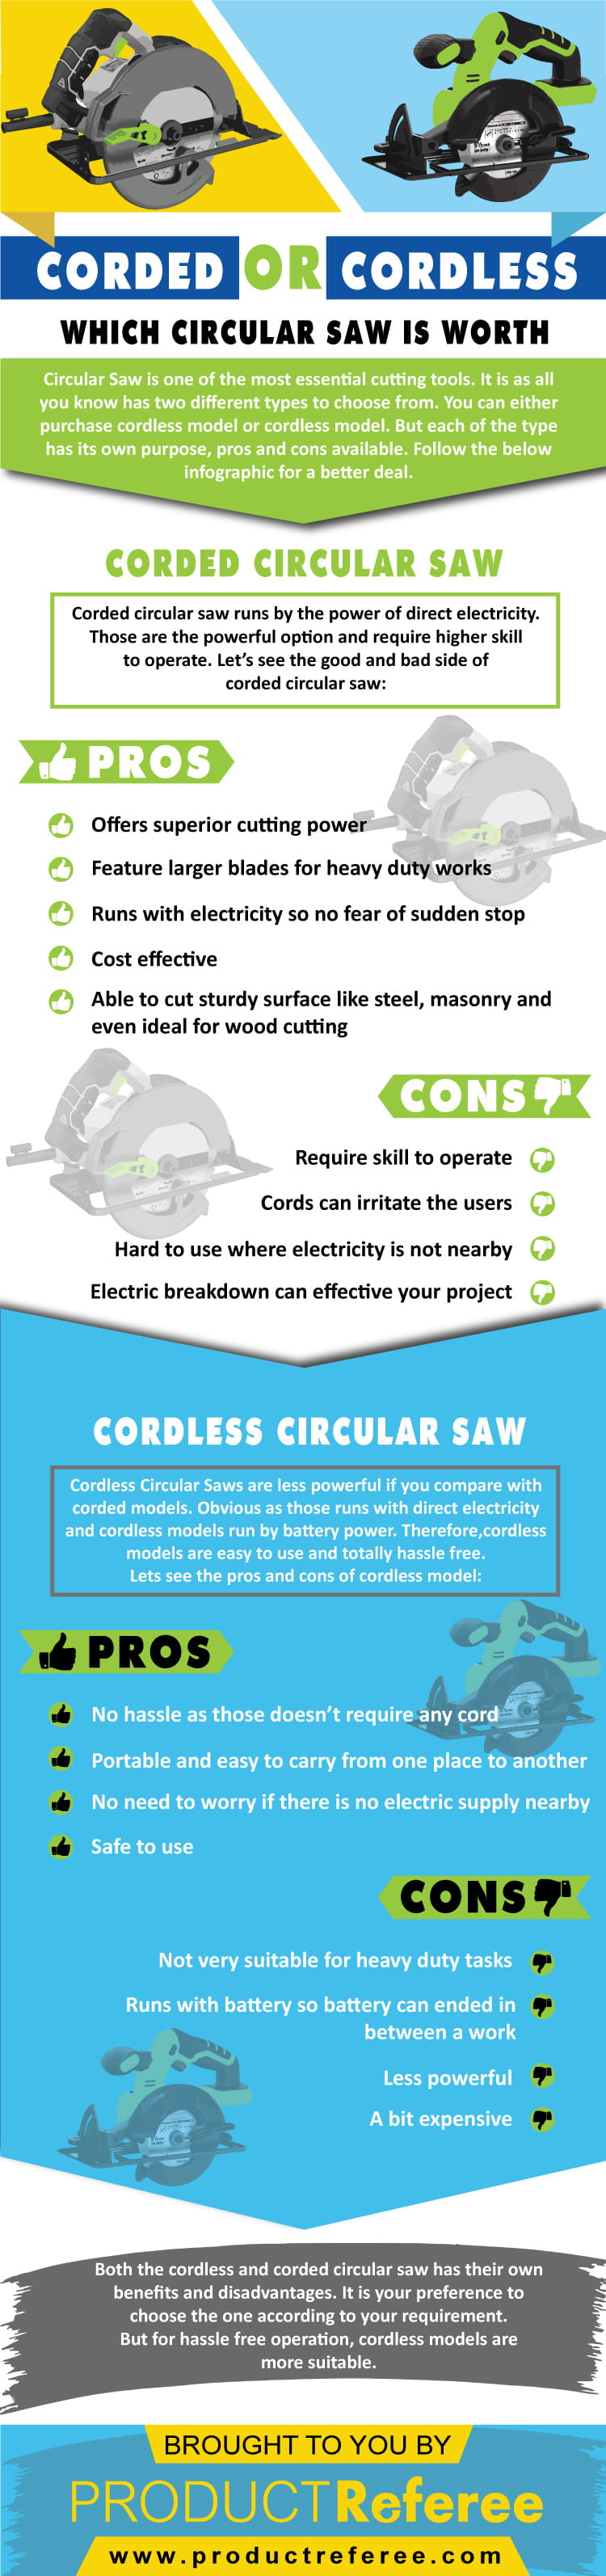 Corded or Cordless Which Circular Saw is Worth Infographic